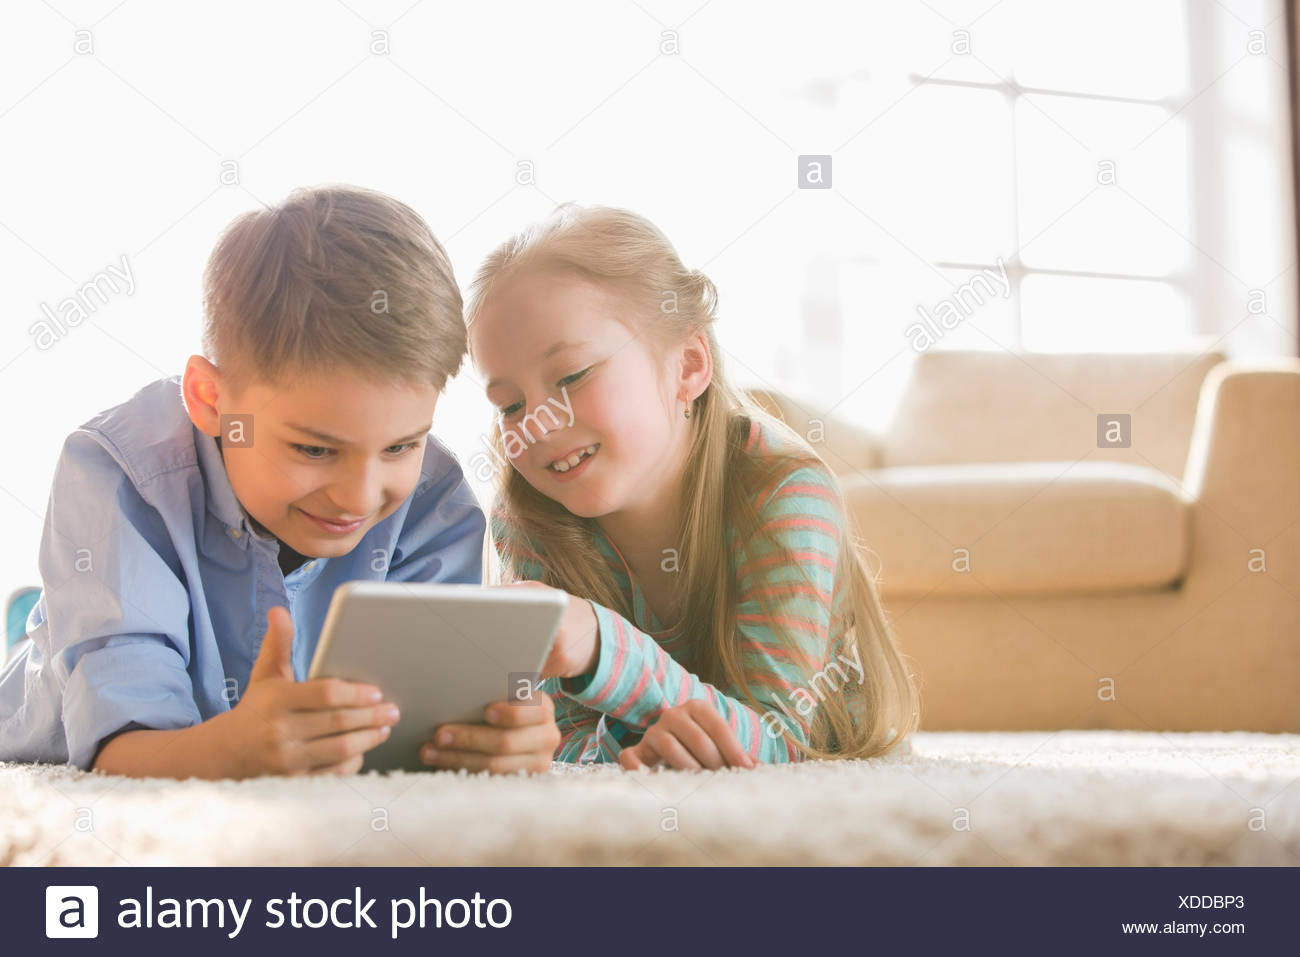 Brother and sister using digital tablet on floor at home - Stock Image